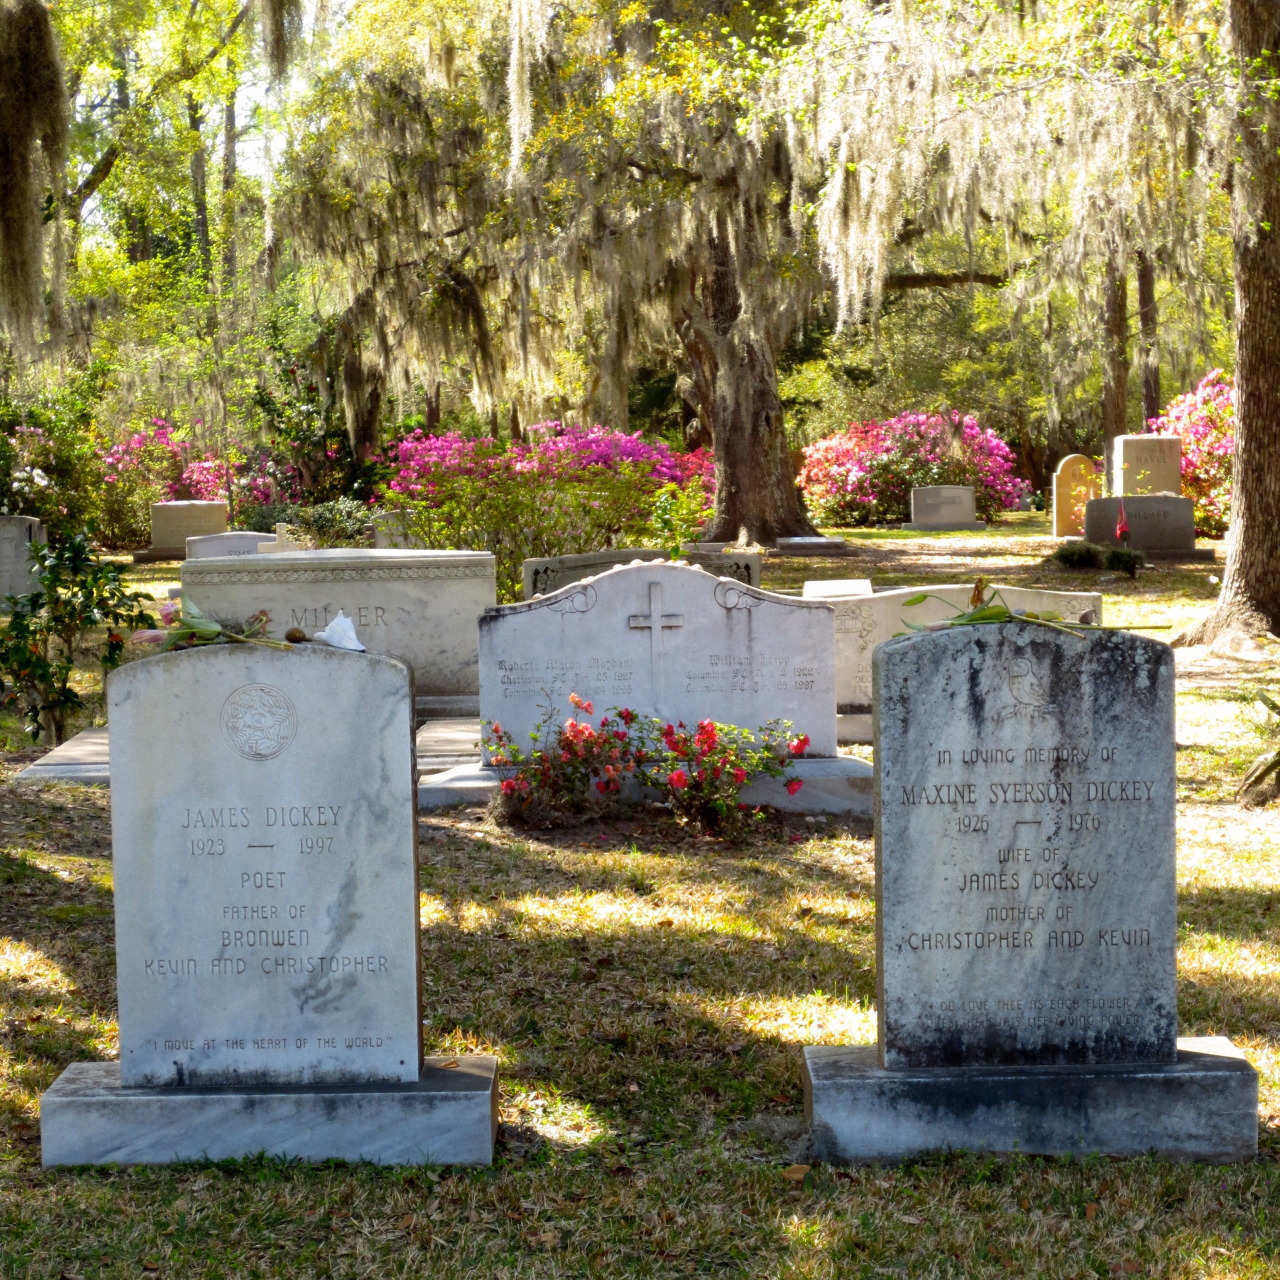 A recent picture of my parents' grave at All Saints Waccamaw in Pawley's Island, South Carolina